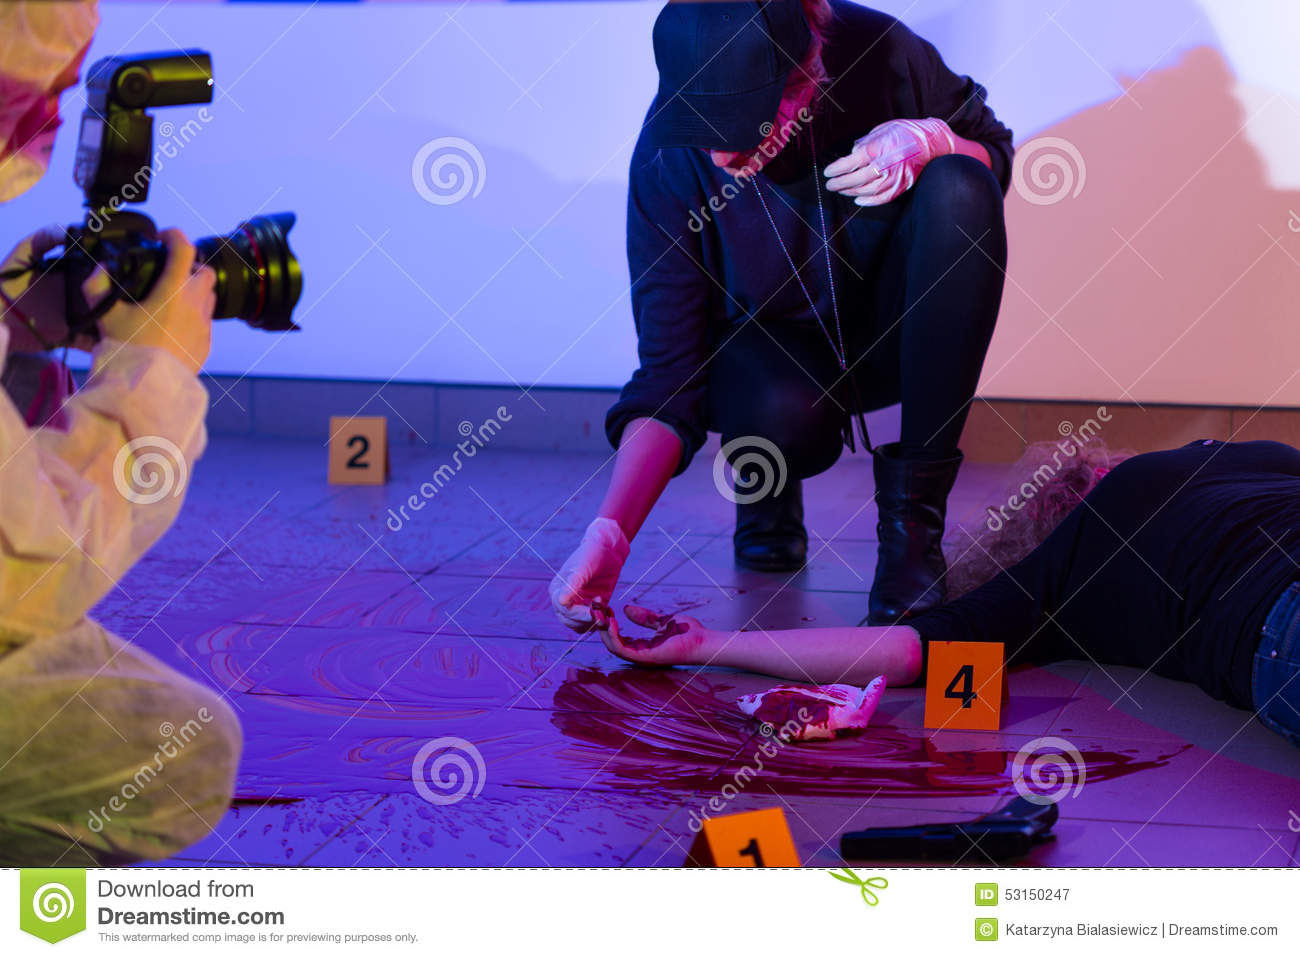 Criminalist working on a crime scene